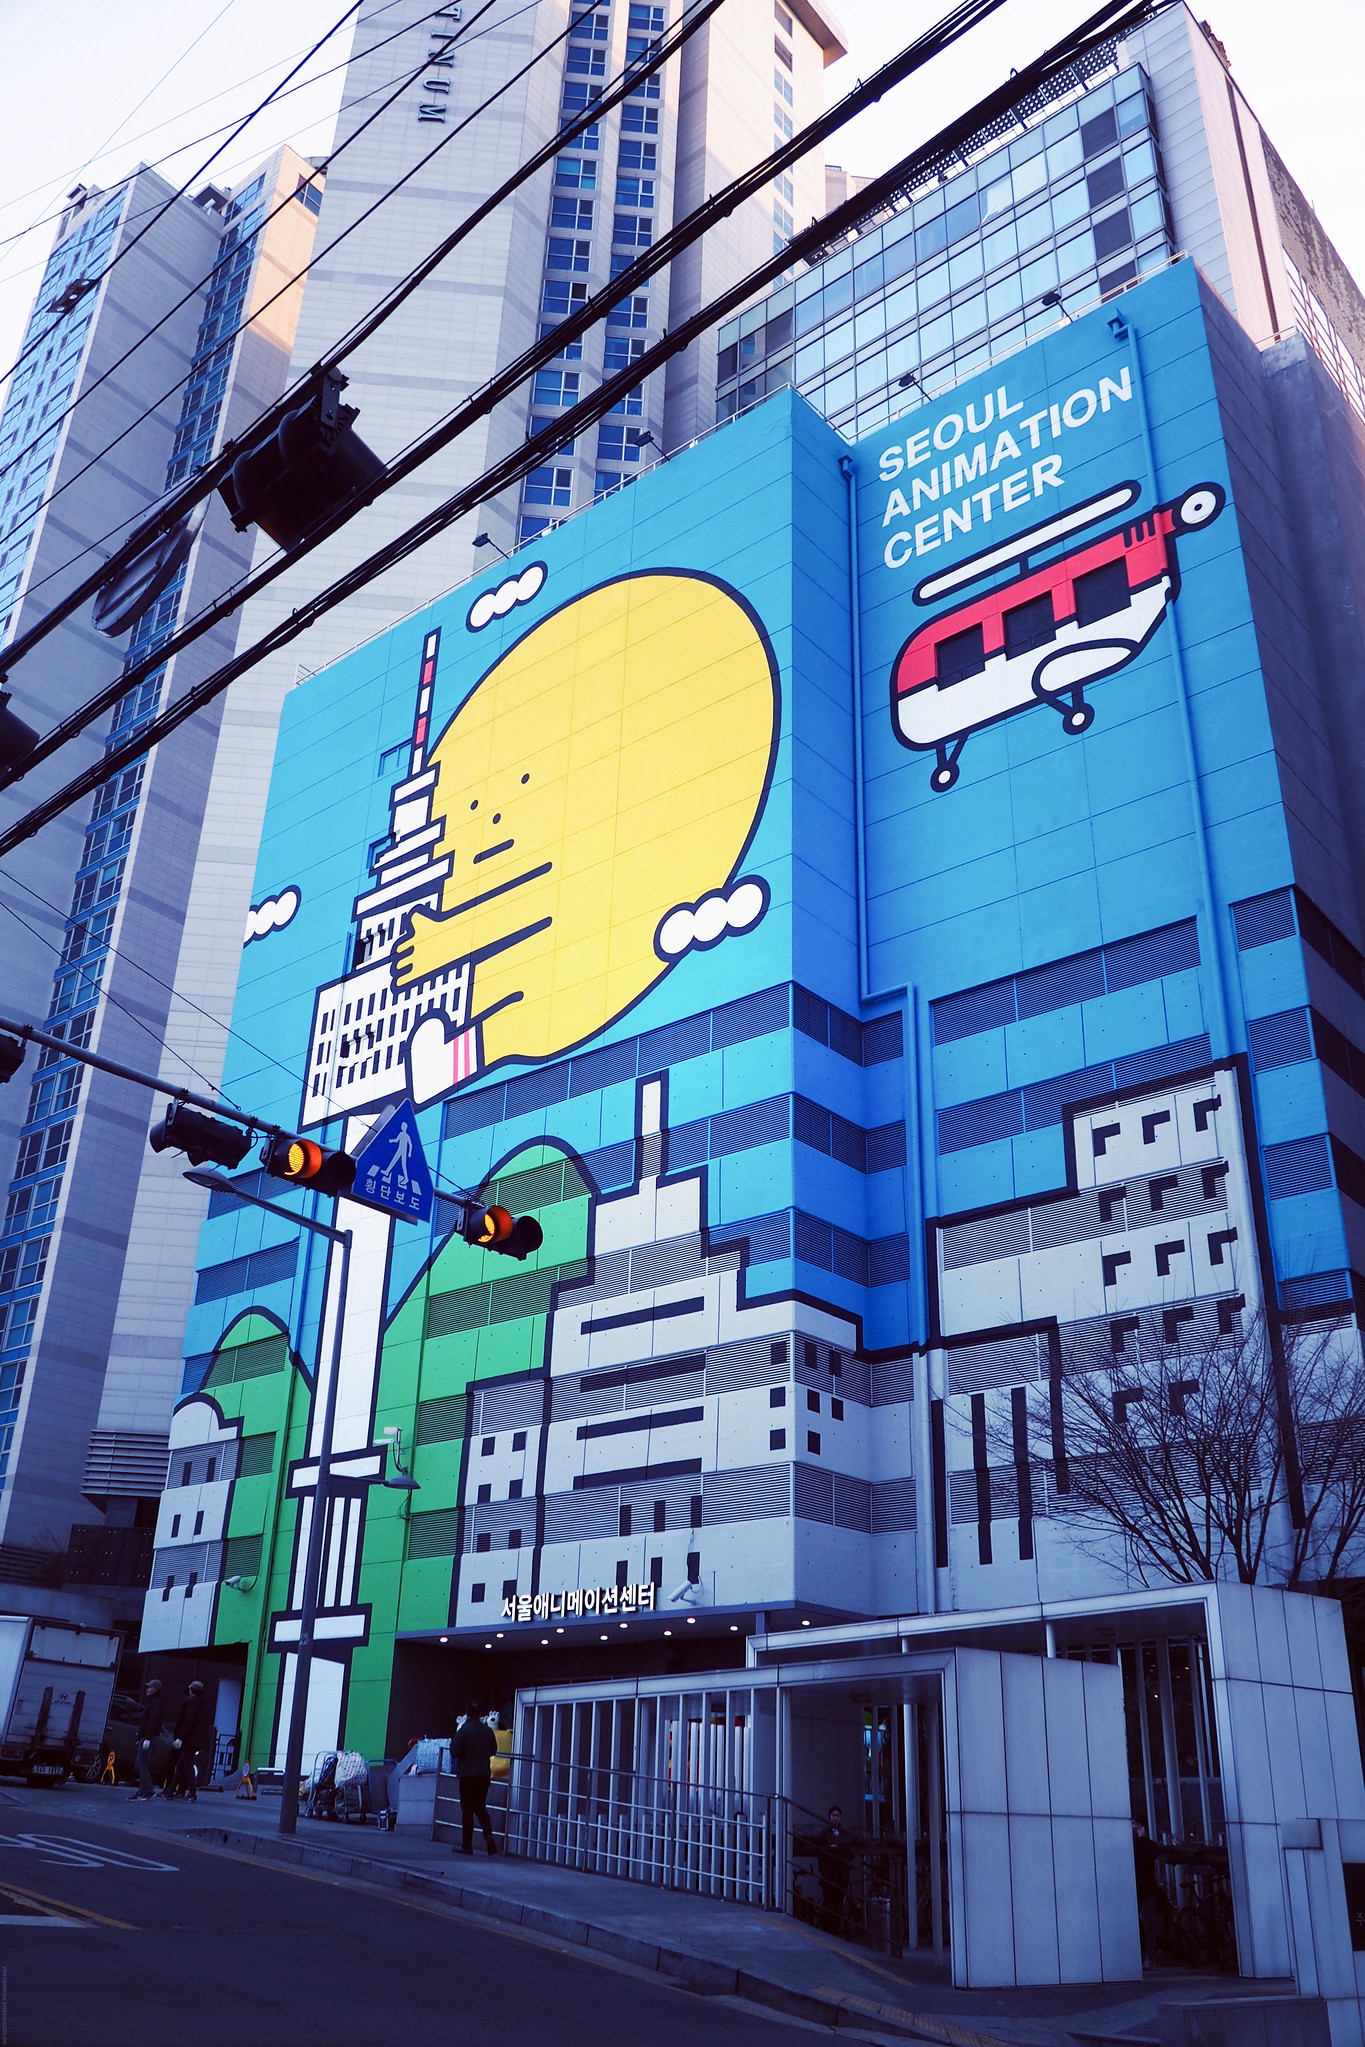 Animation Centre Seoul South Korea 2019